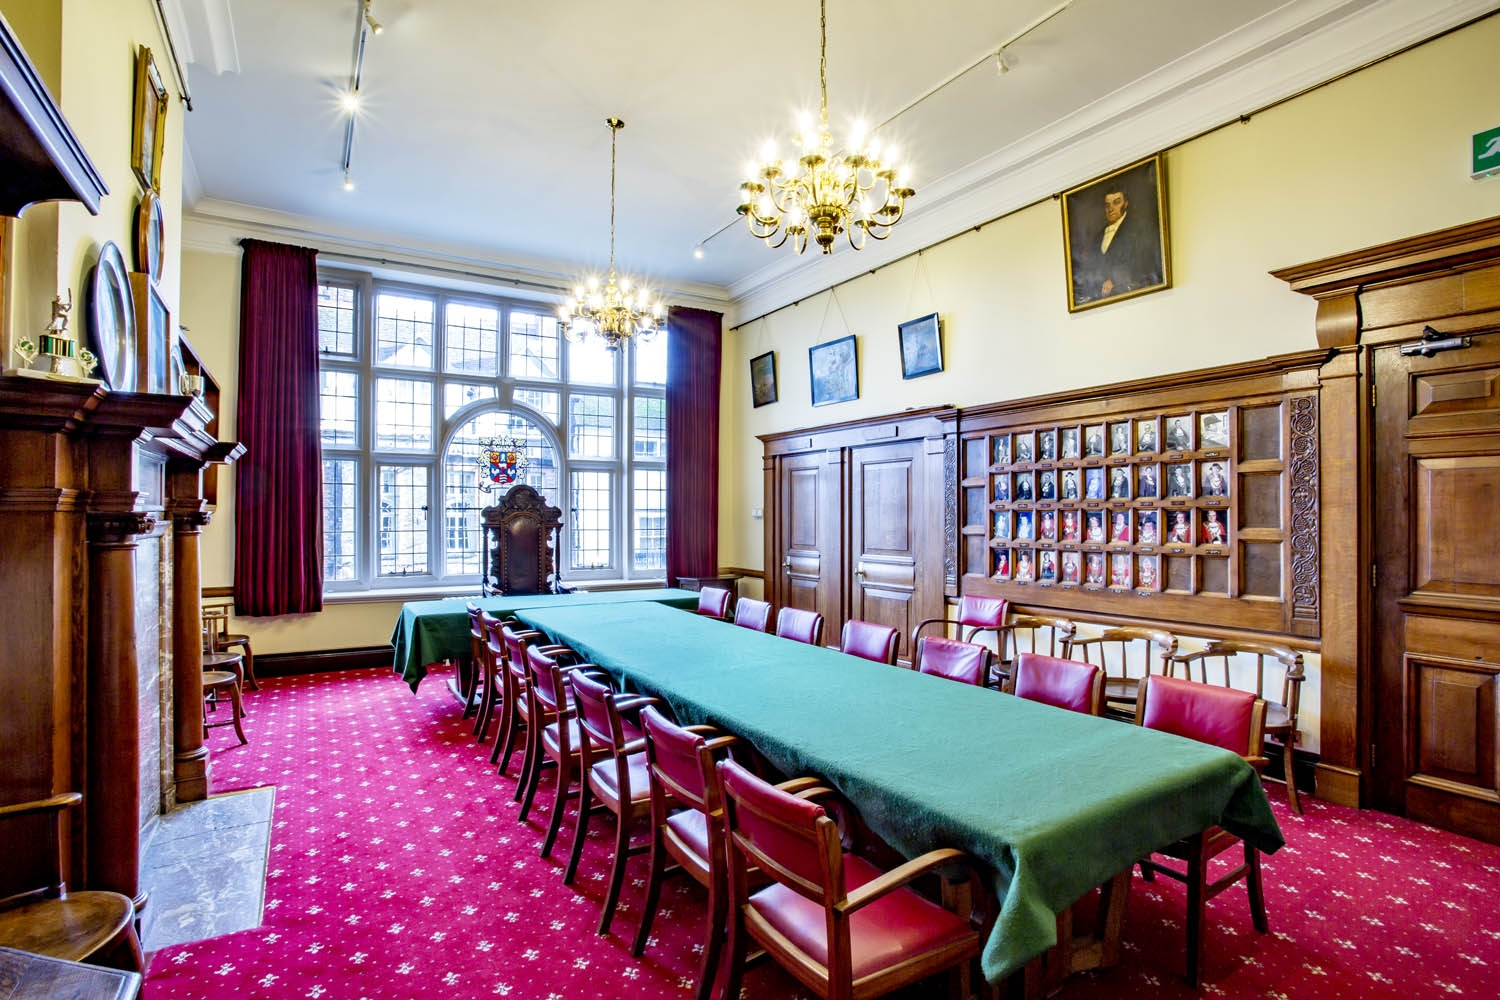 A grand, panelled room lined with portraits.  A very large window takes up one wall with a stained glass crest. A long table is lined by wooden and leather chairs